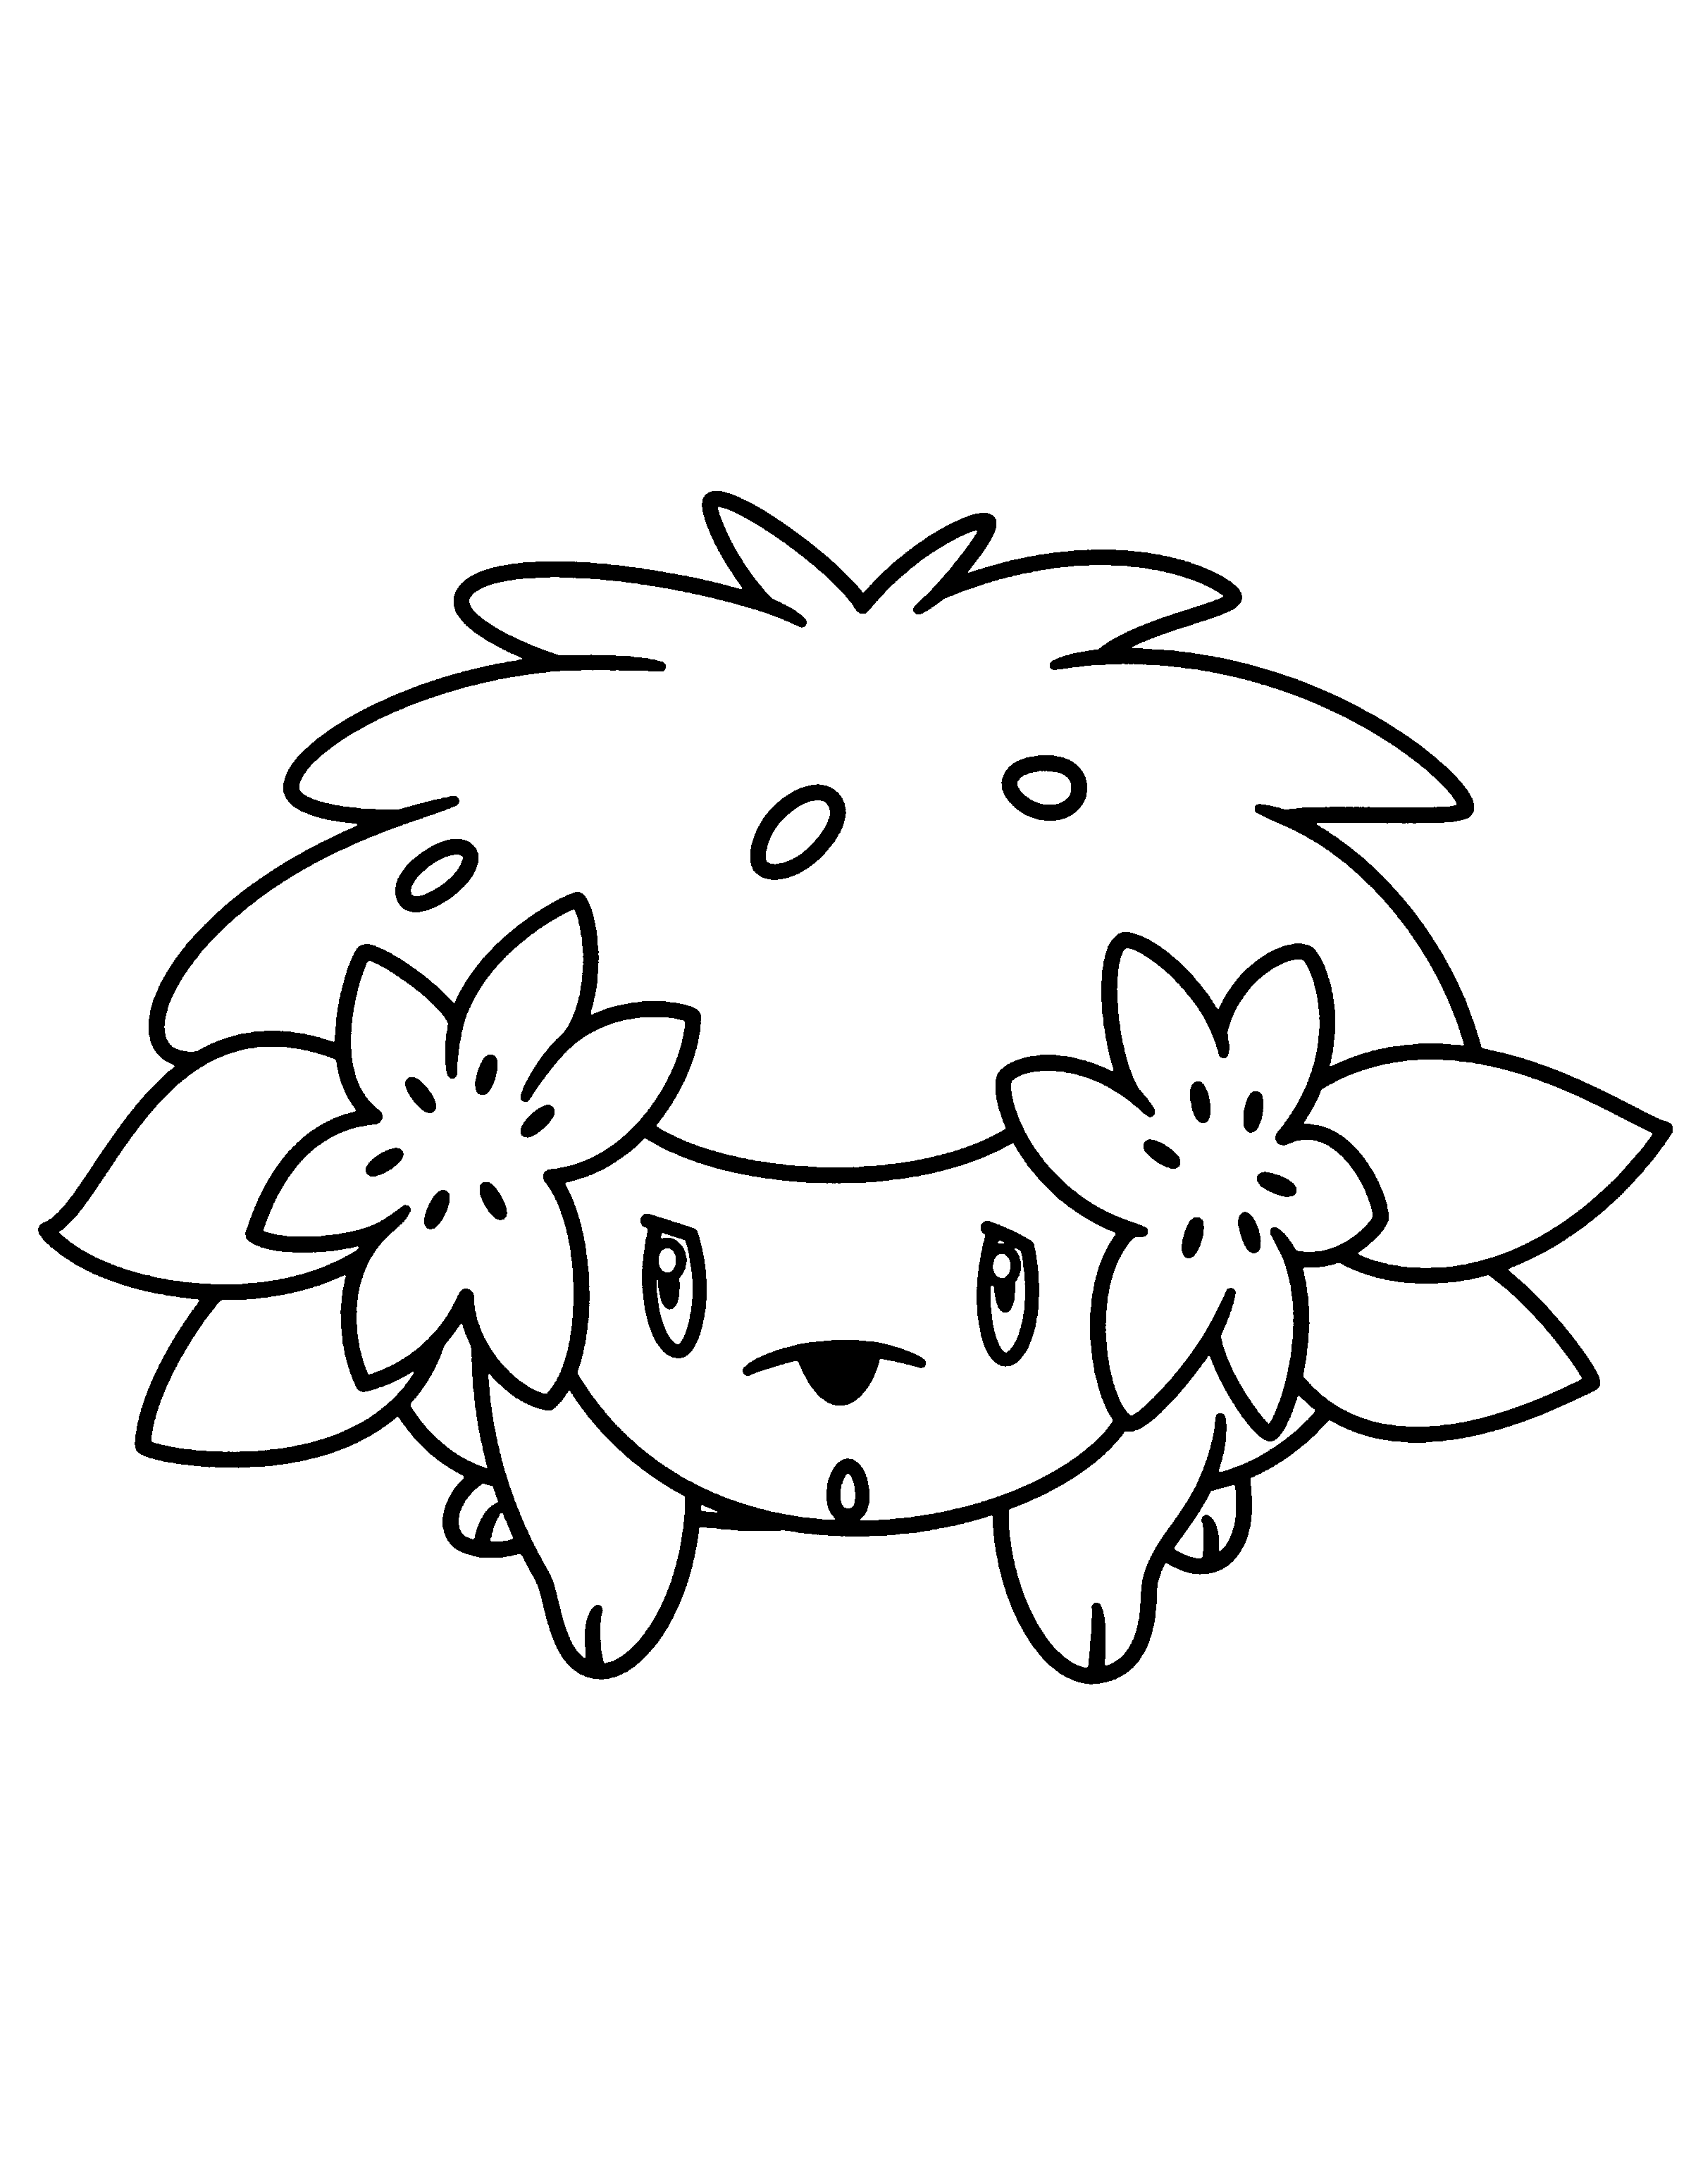 Kleurplaten Pokemon Mega.Pokemon Coloring Pages Shaymin At Getdrawings Com Free For